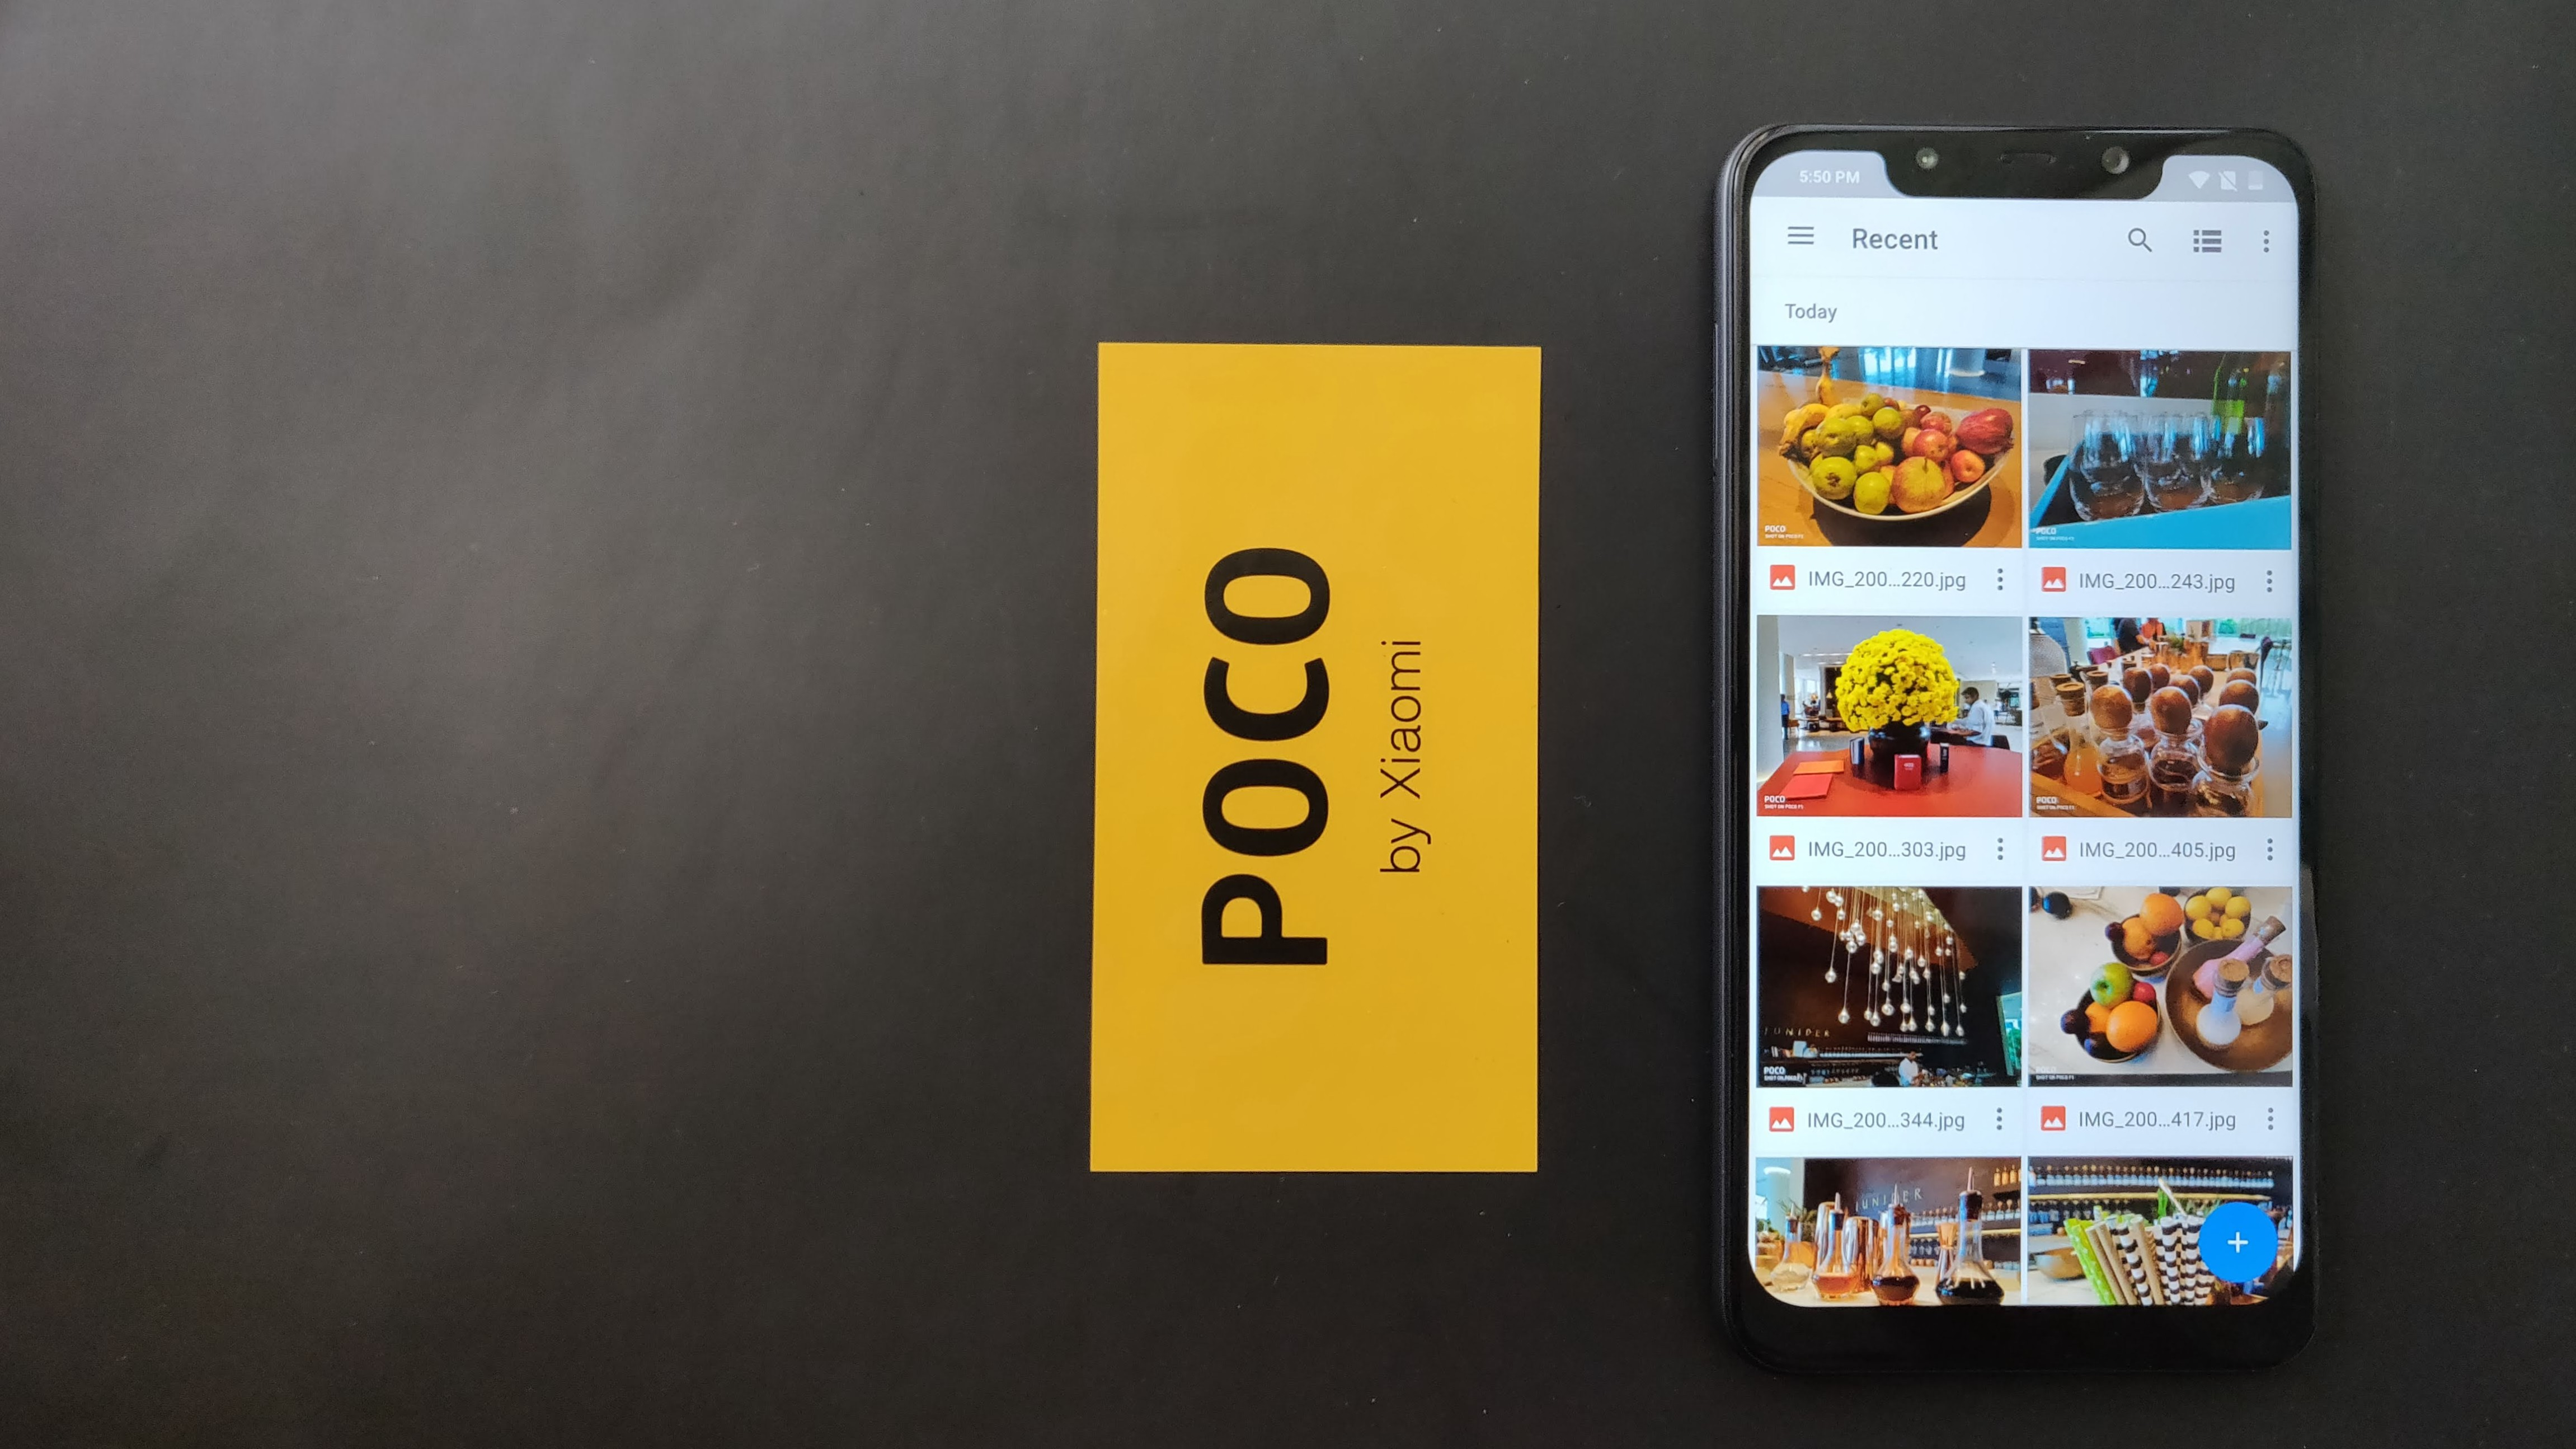 Poco X2 could be the cheapest smartphone to feature a 120Hz display